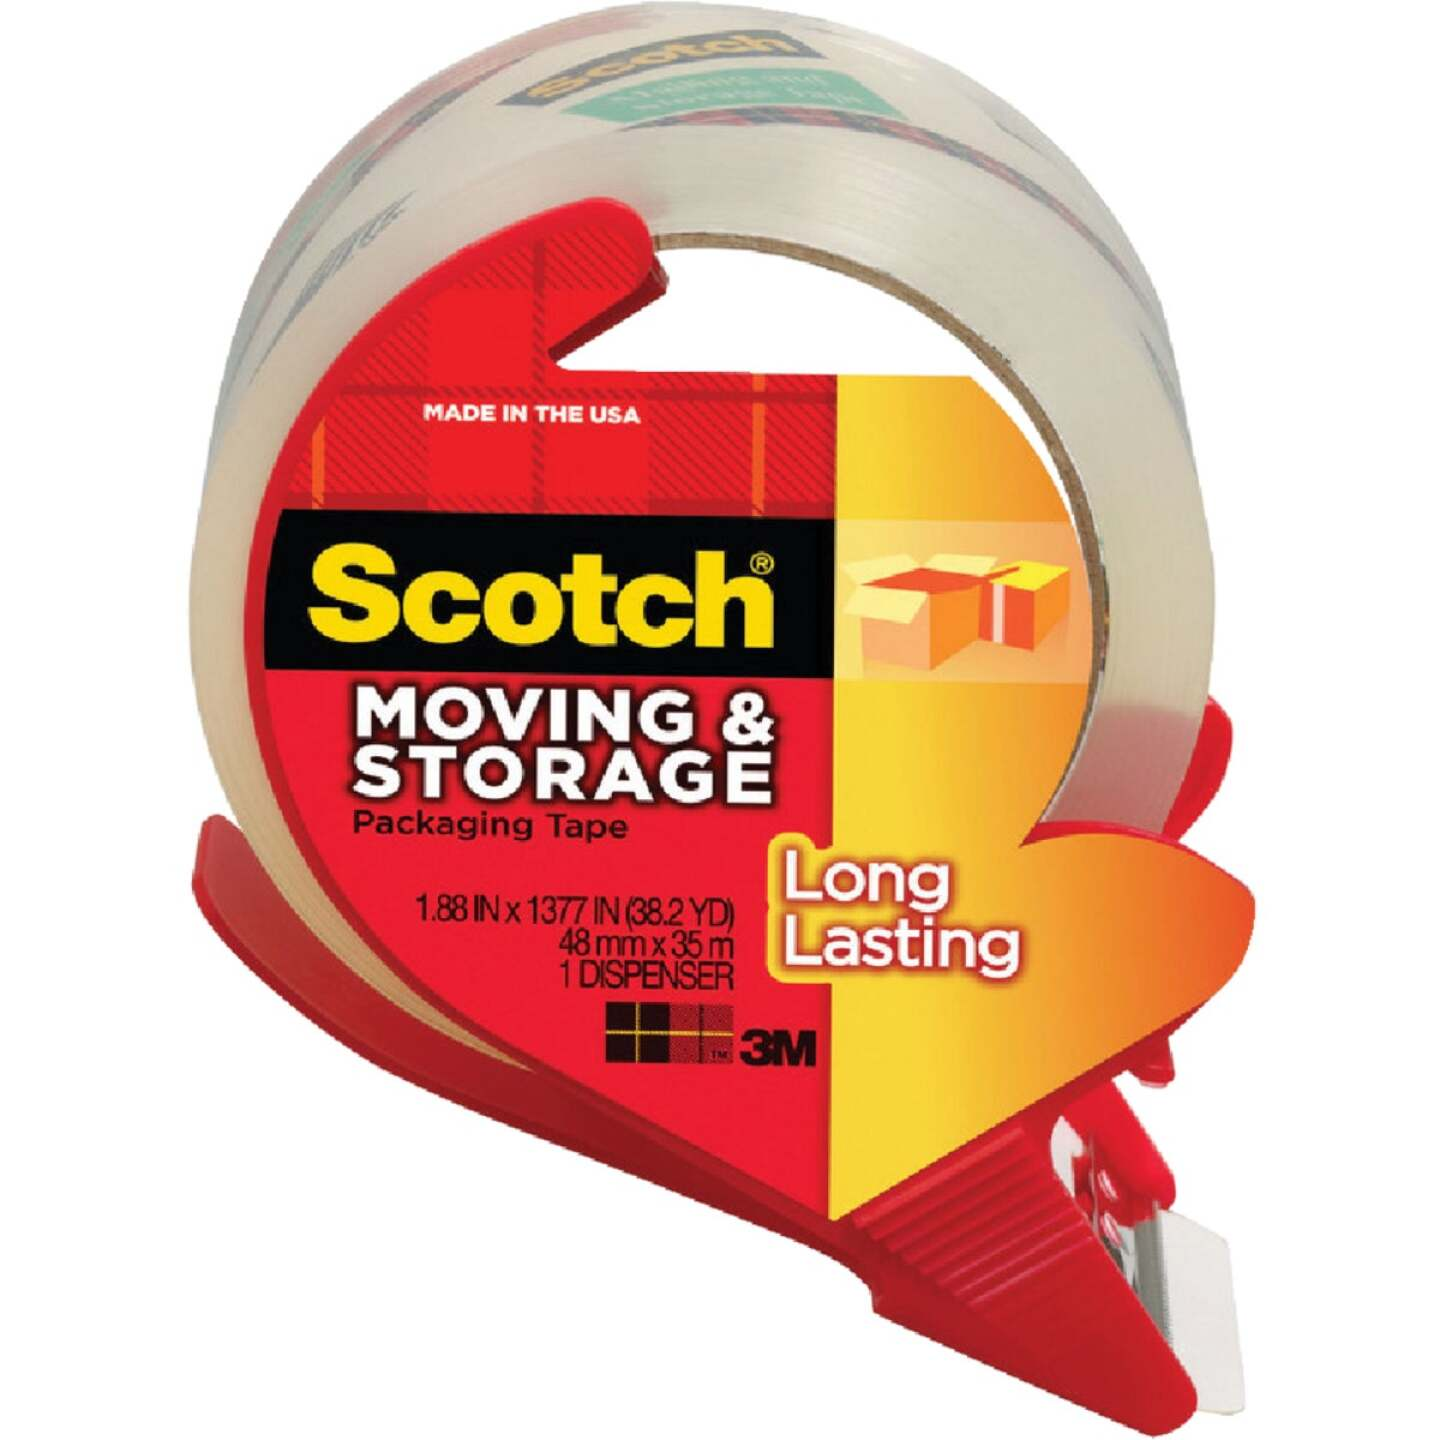 3M Scotch 1.88 In. x 38.2 Yd. Clear Box Sealing Tape Image 1